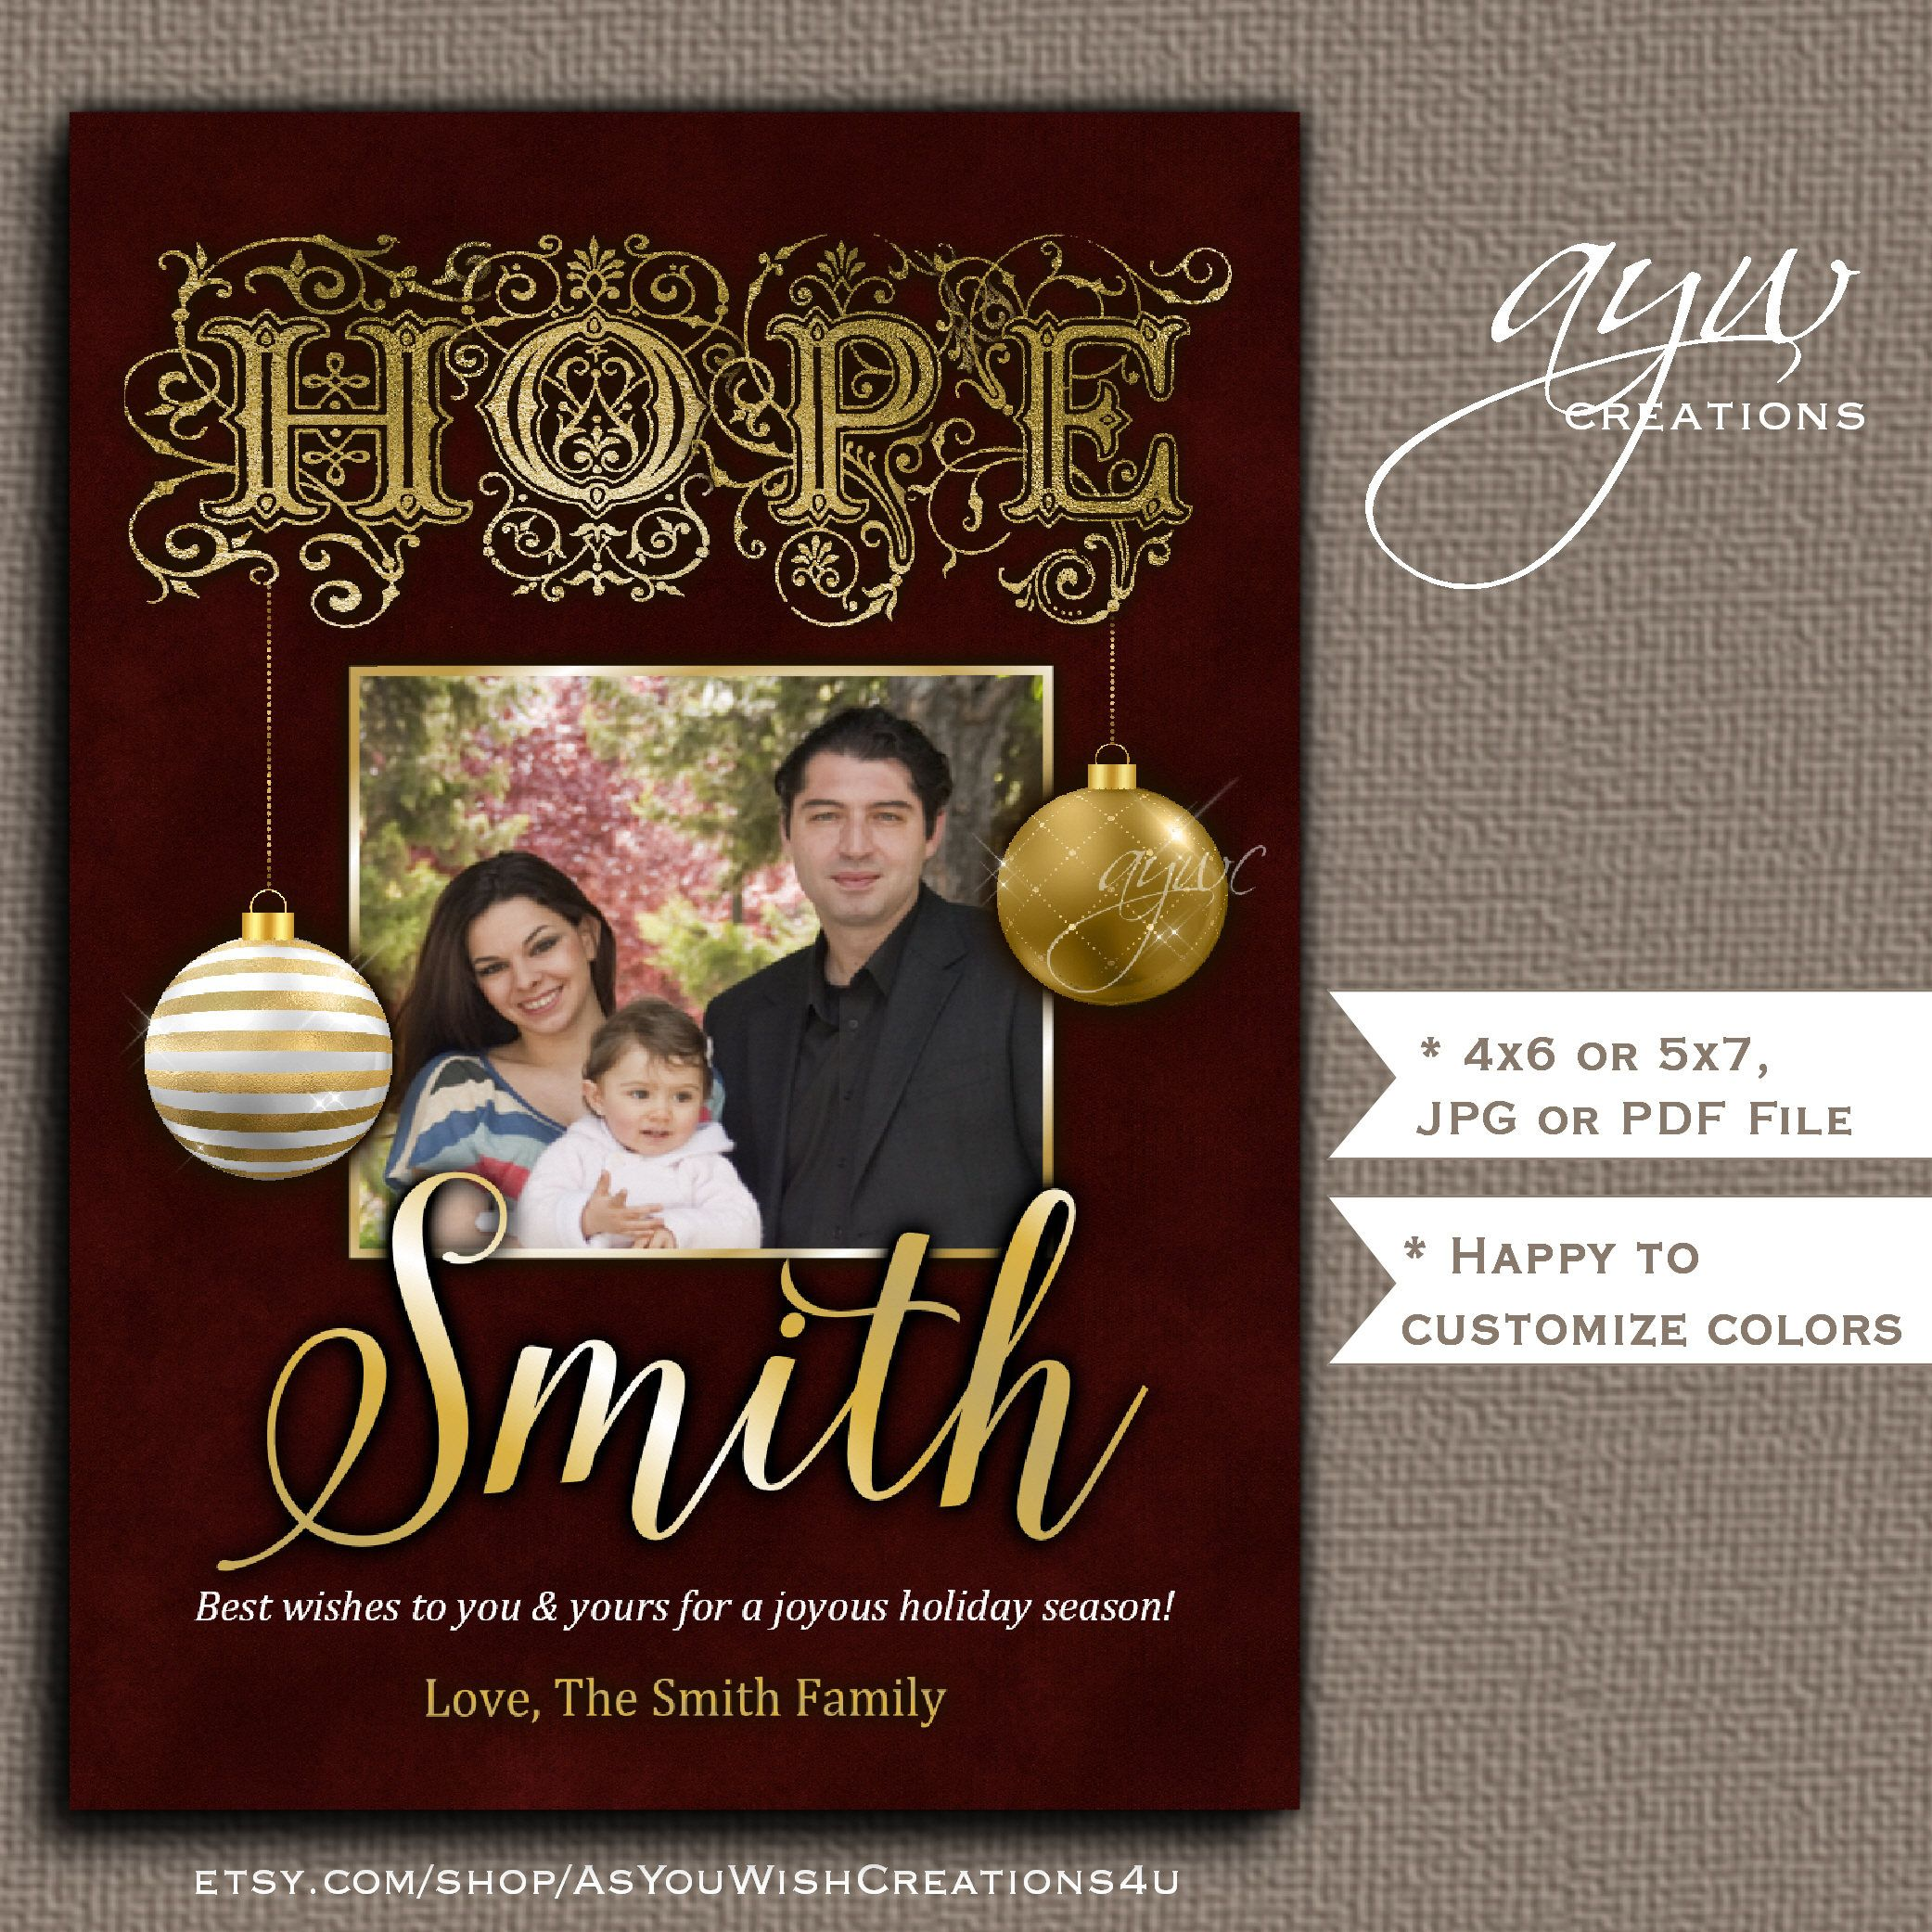 Hope Christmas Card Printable With Ornaments And Family Name With 1